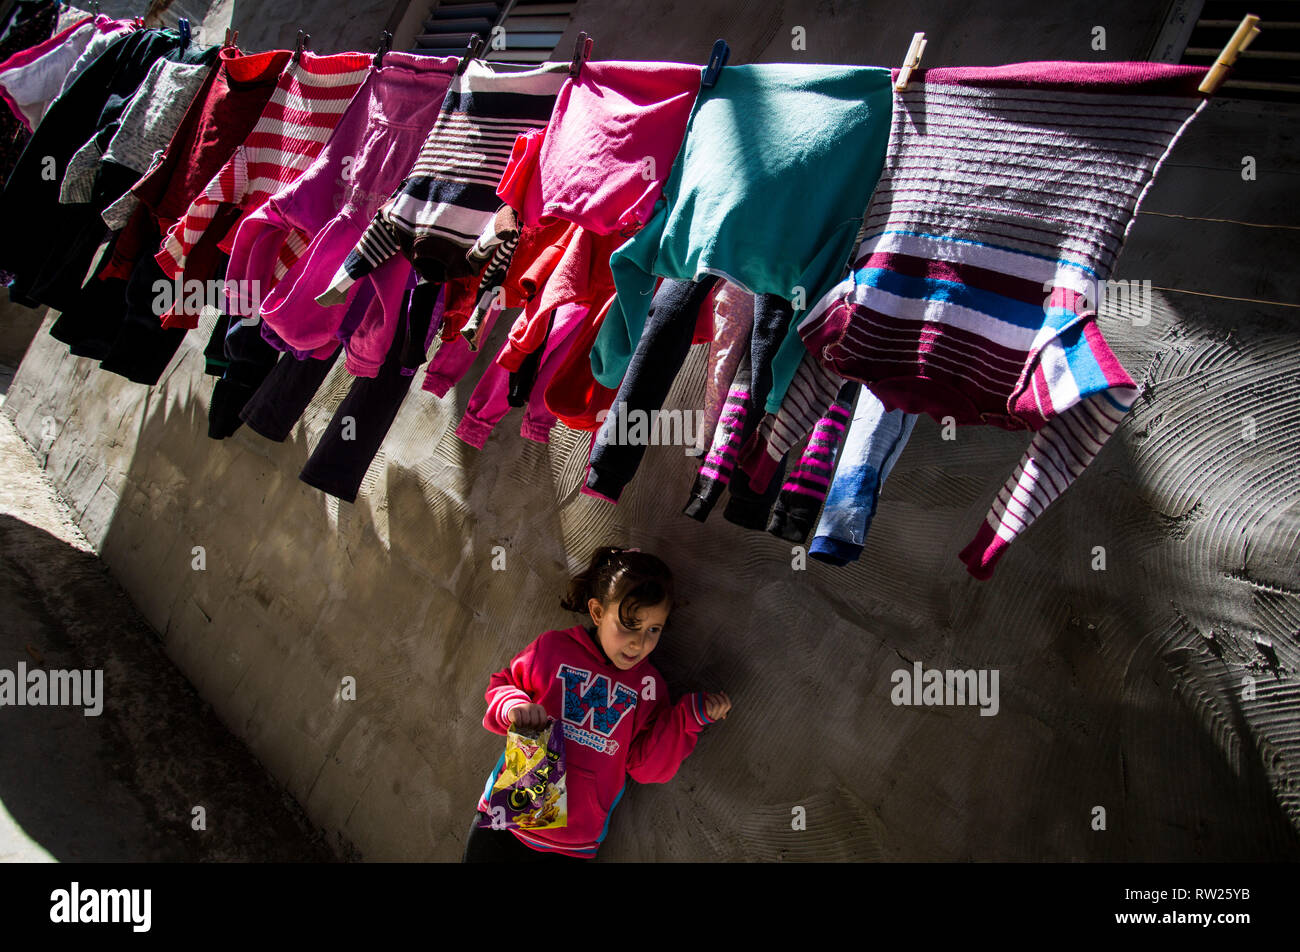 Gaza, Palestine. 4th Mar 2019. A Palestinian girl seen standing near their house at the Jabalya refugee camp in the northern Gaza Strip. With high rates of unemployment and lack of job opportunities in Gaza, an increasing number of families are facing poverty after losing work during the last 12-year blockade on Gaza. Credit: SOPA Images Limited/Alamy Live News Stock Photo